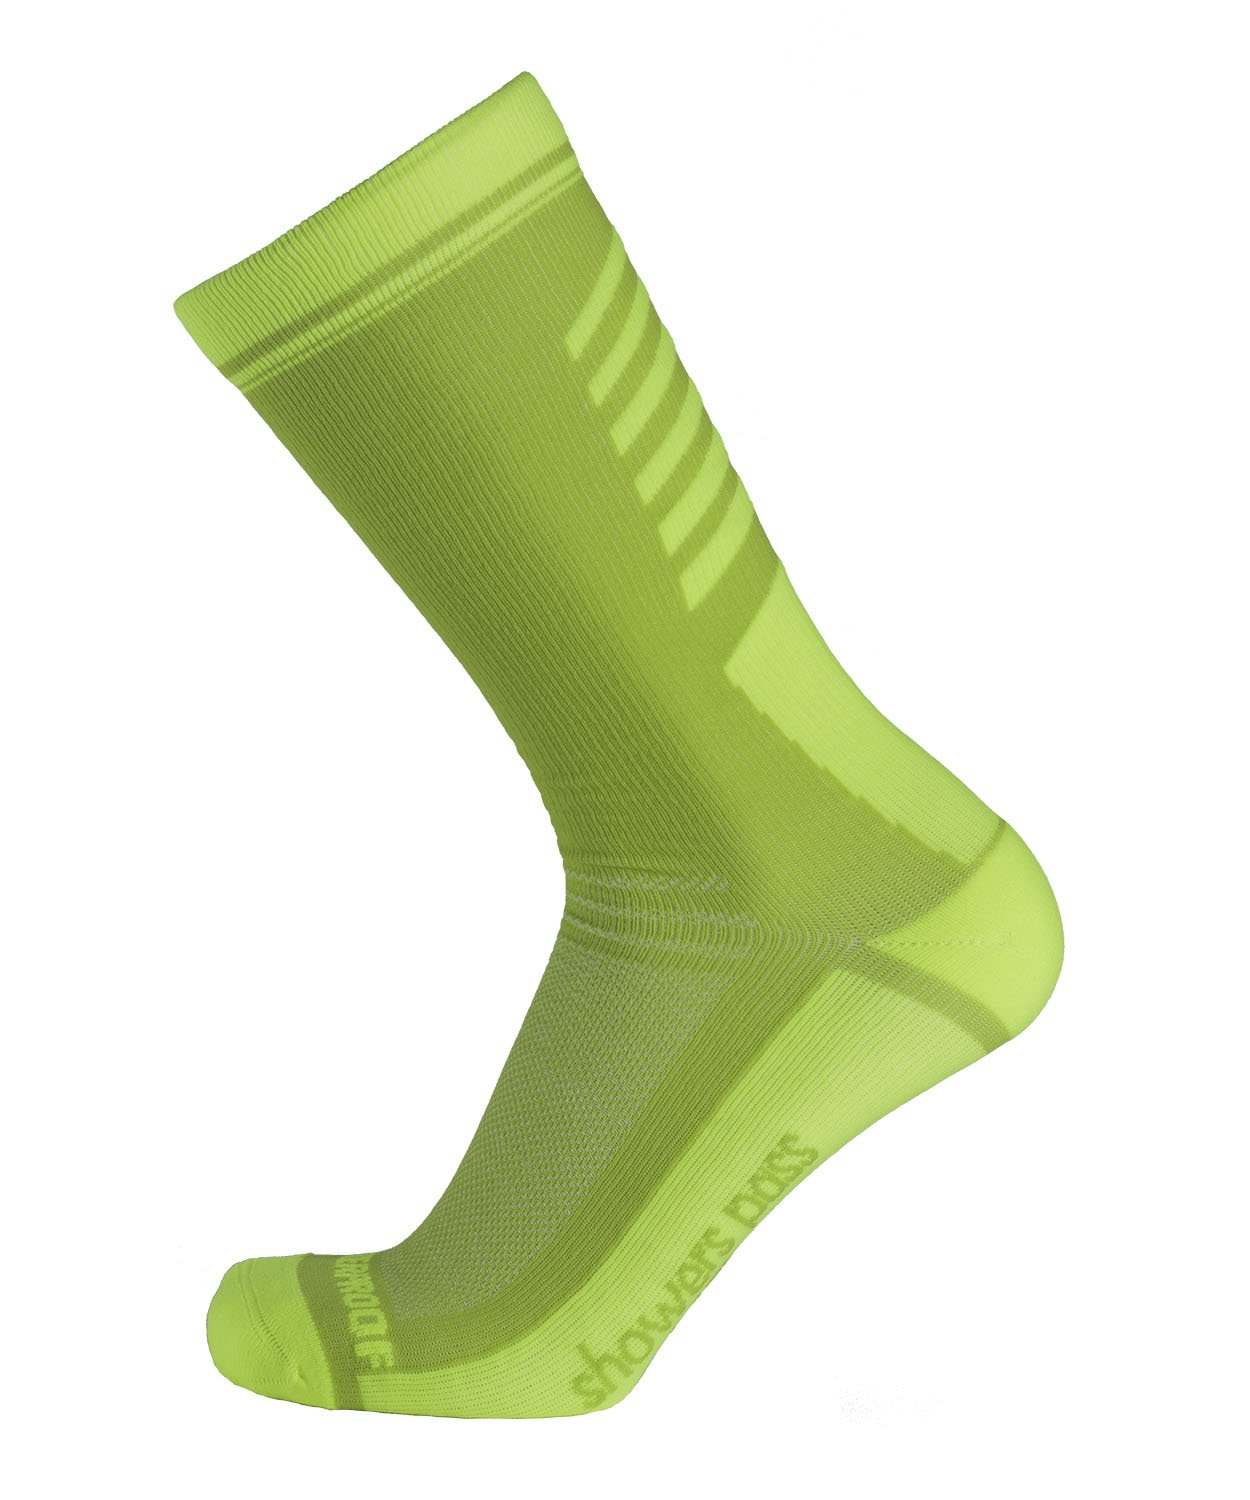 Lightweight Waterproof Socks  - Crosspoint Brights